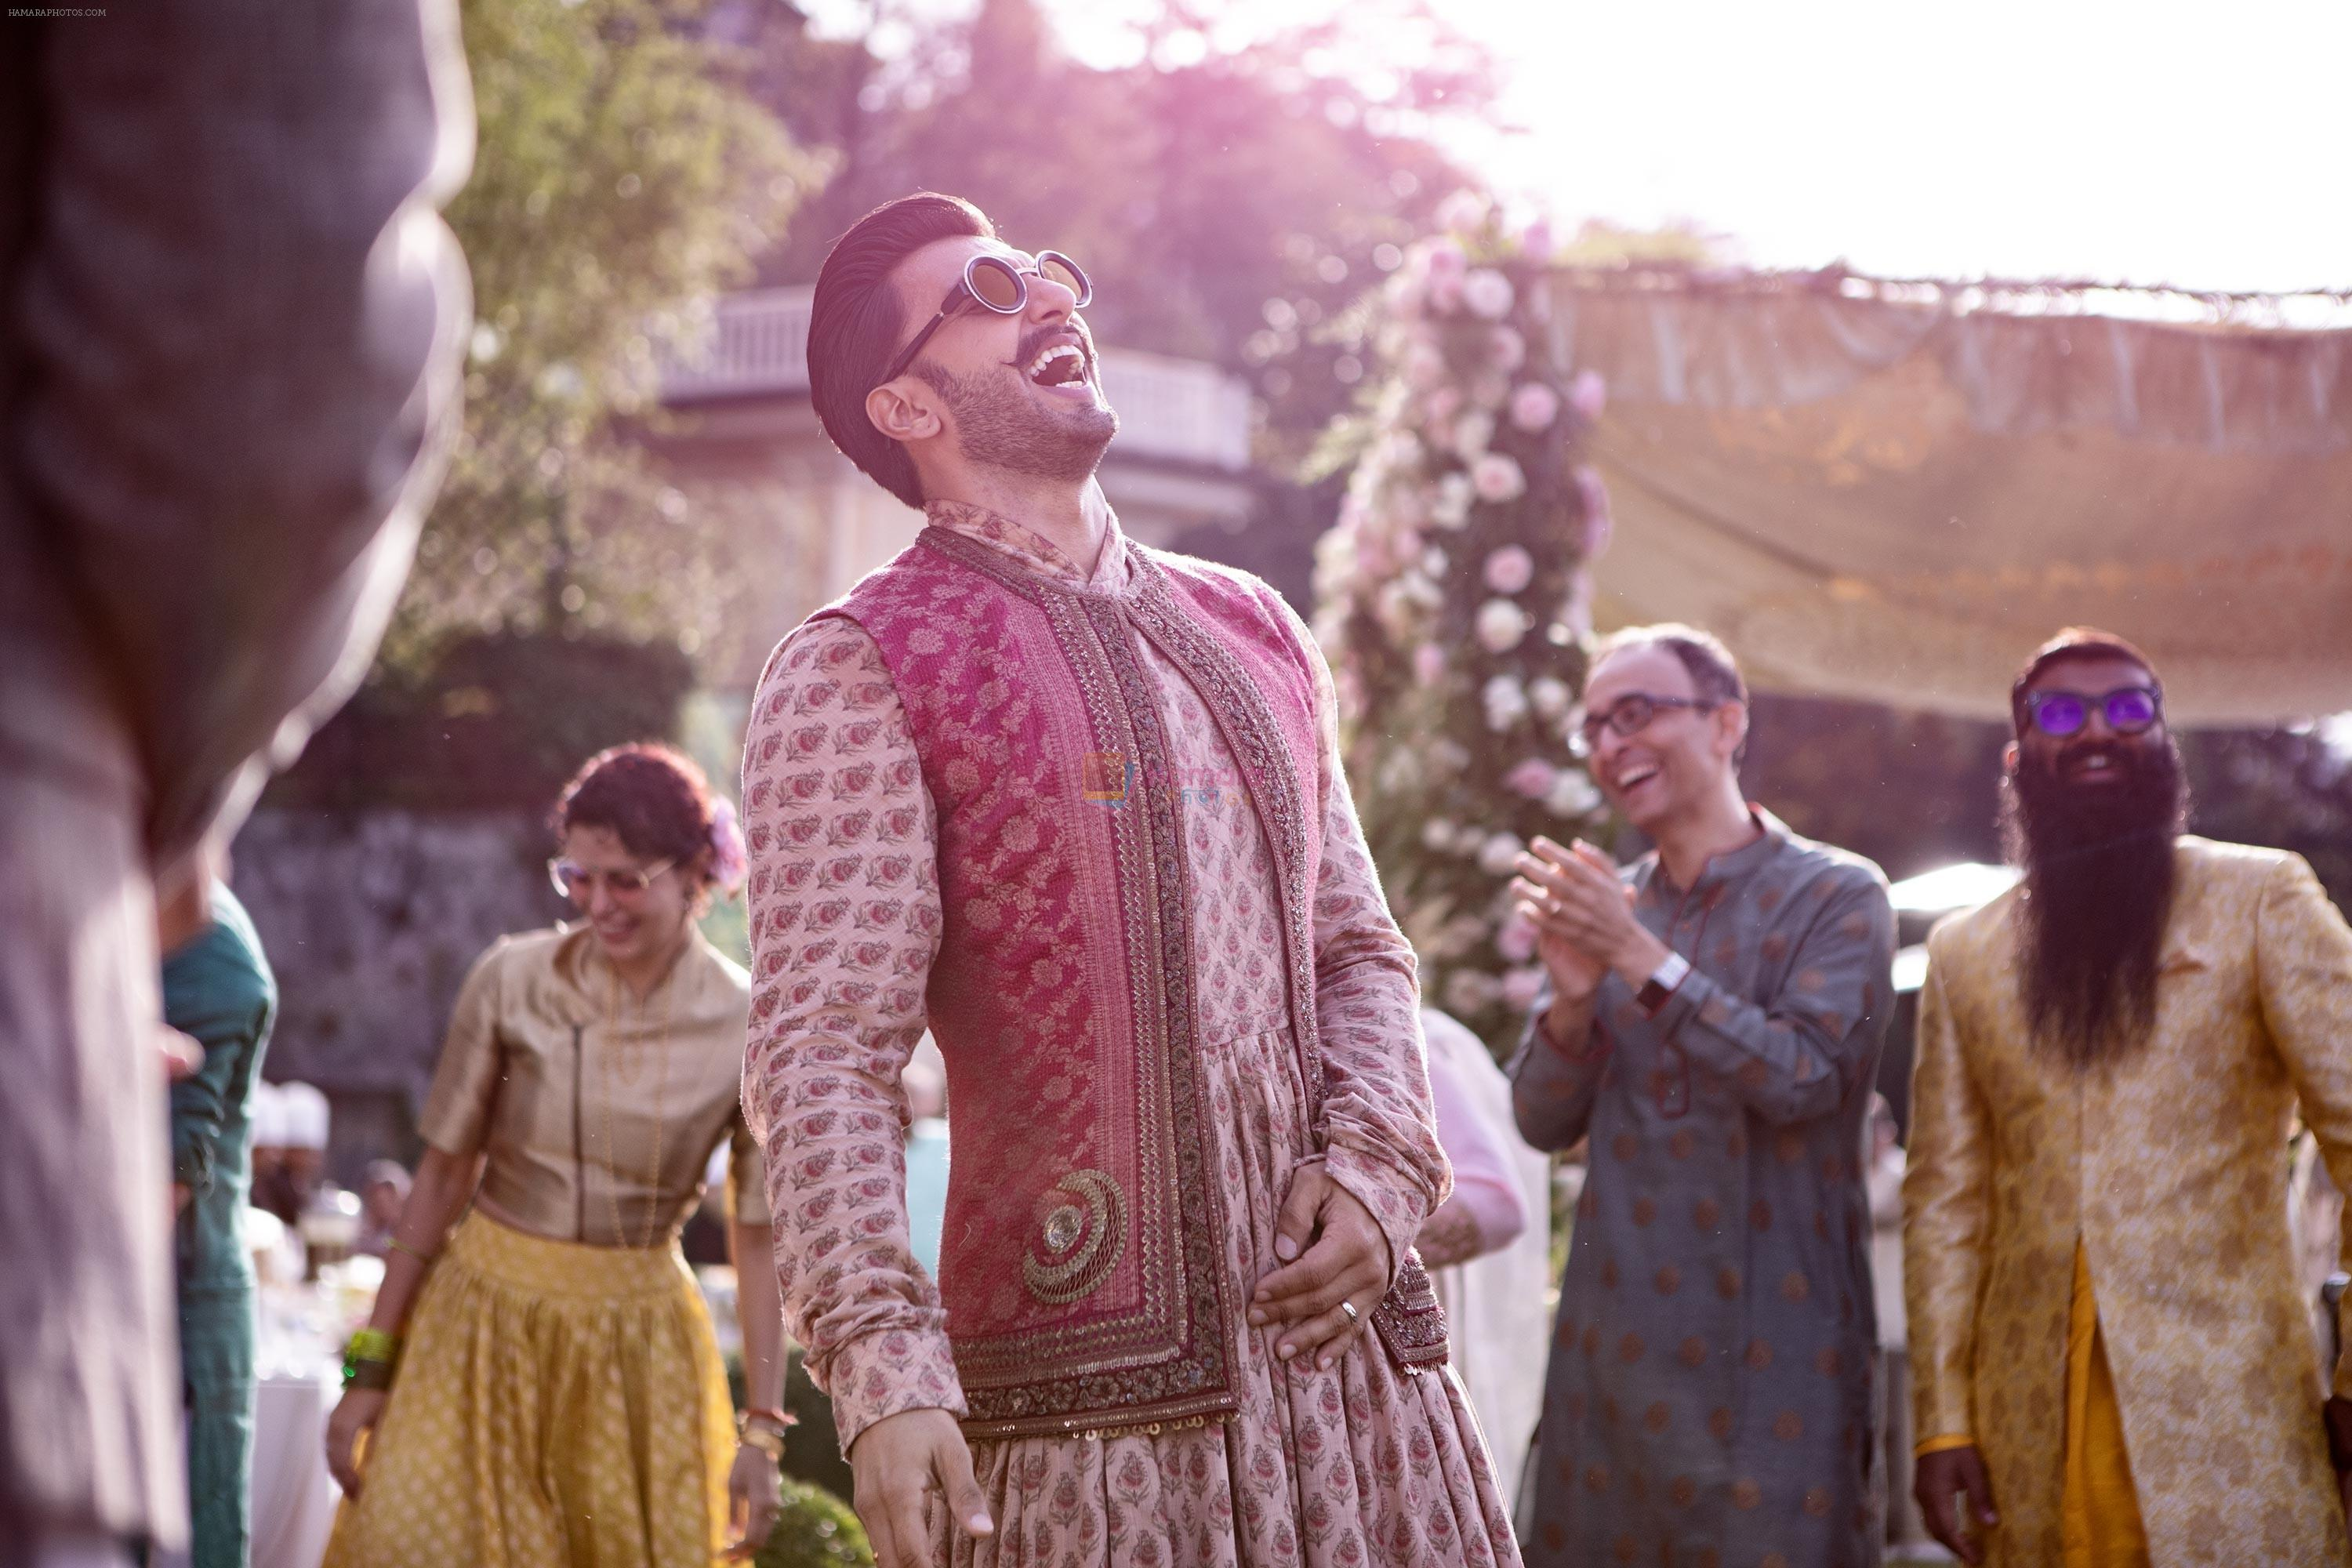 Ranveer laughing at the mehendi ceremony in Italy